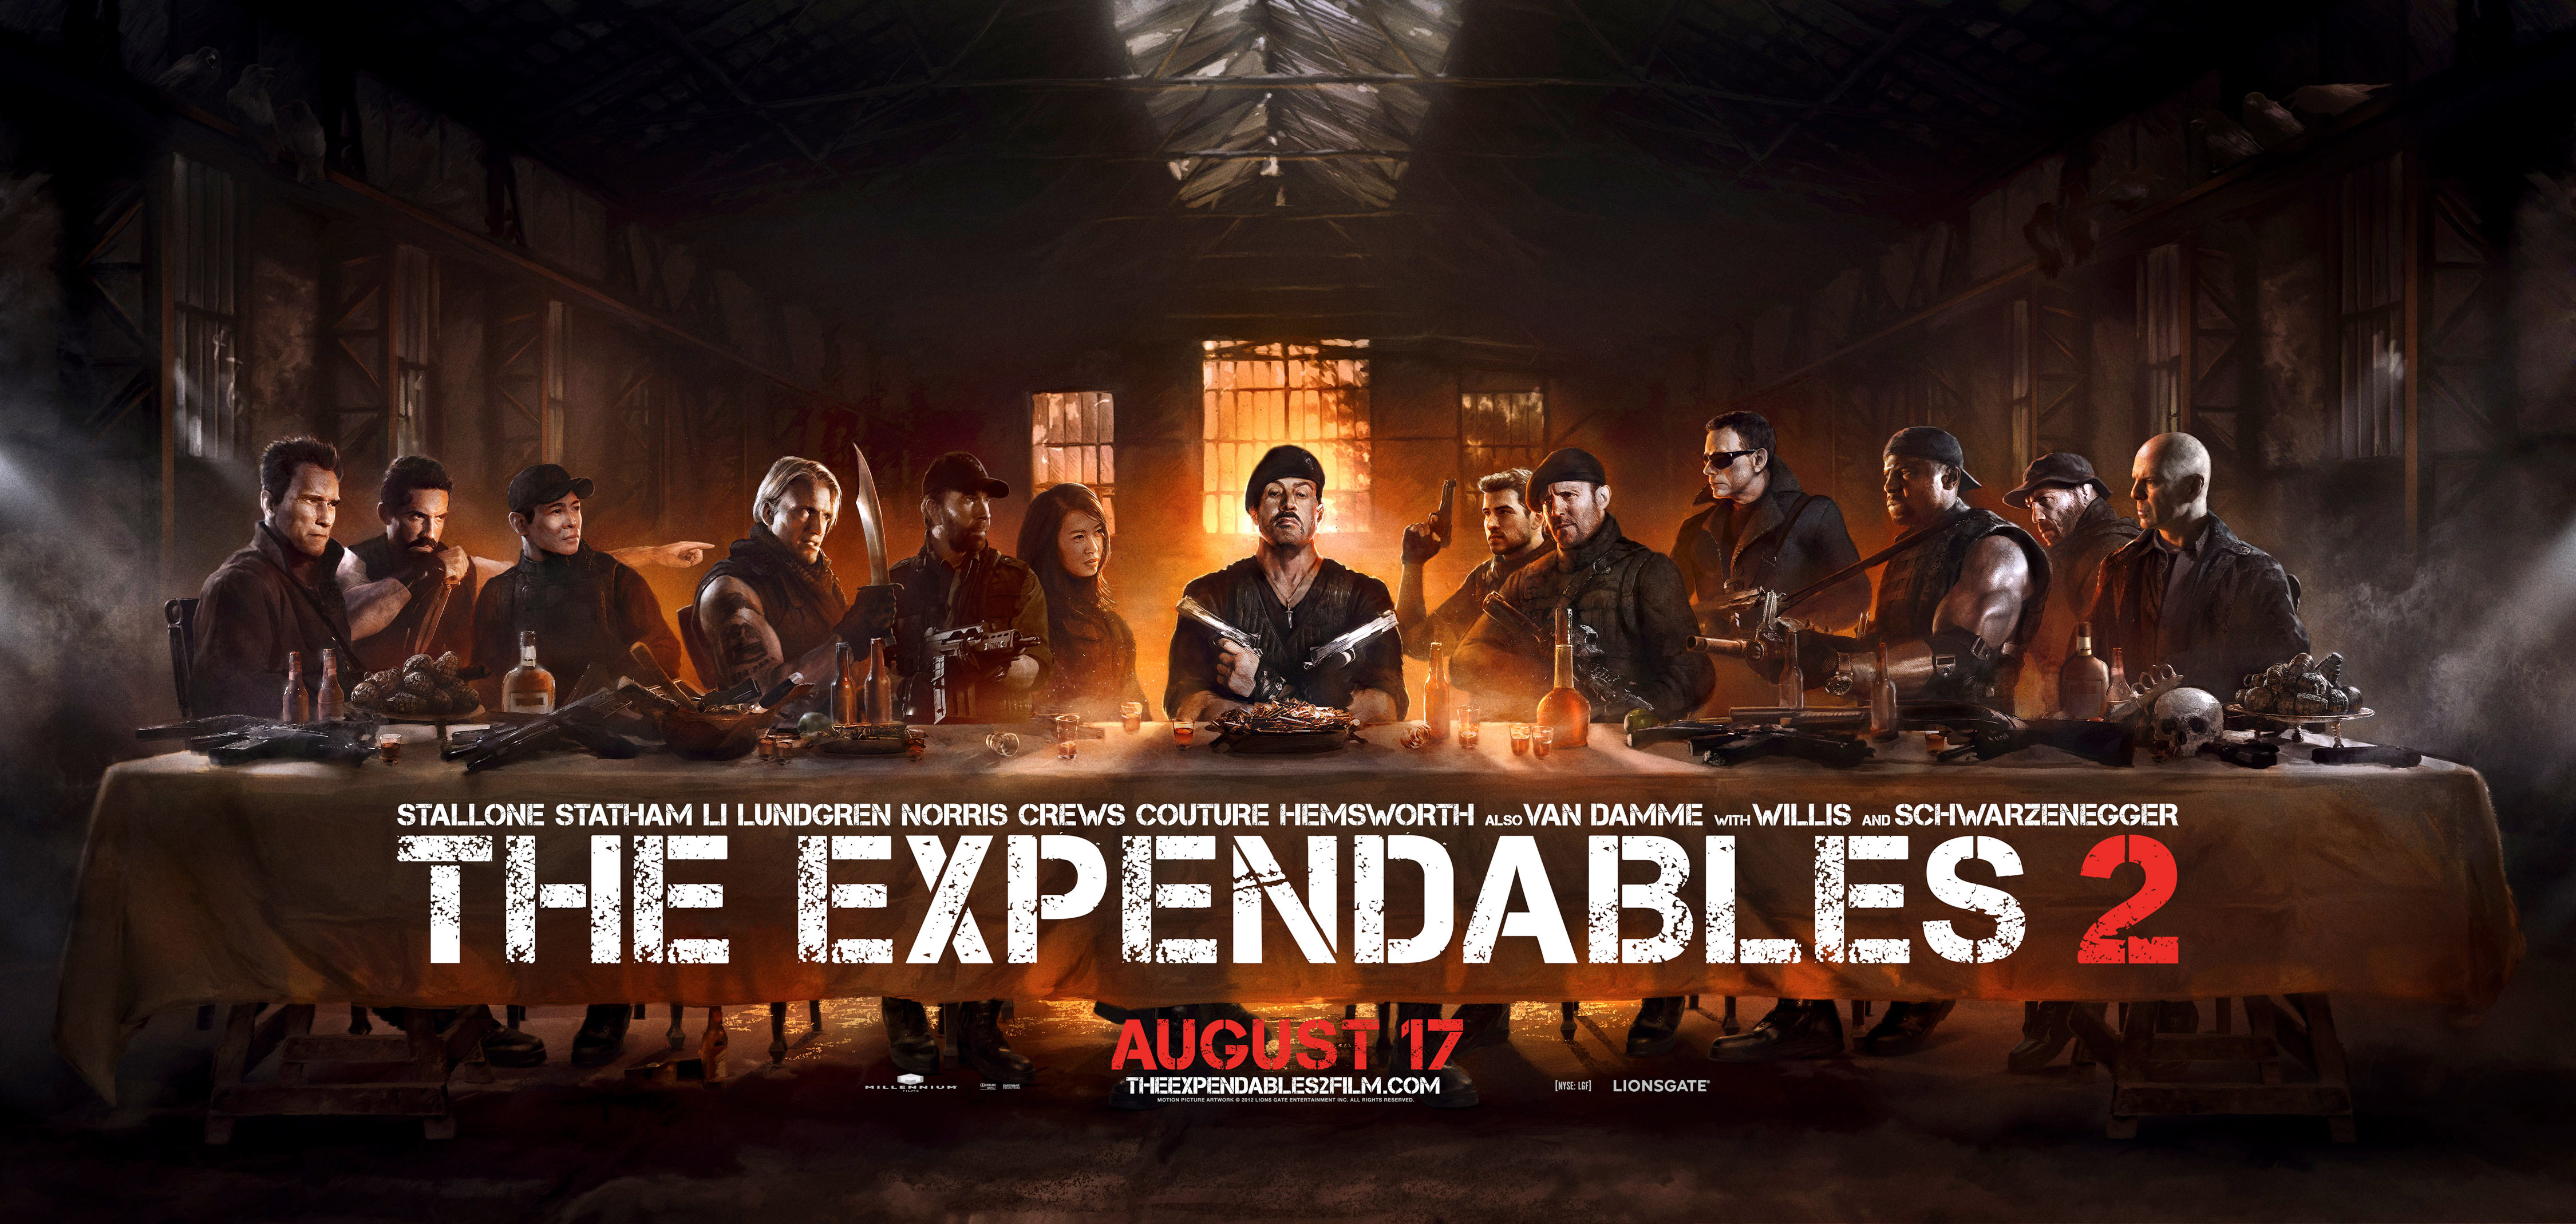 the expendables 2 wallpapers, pictures, images